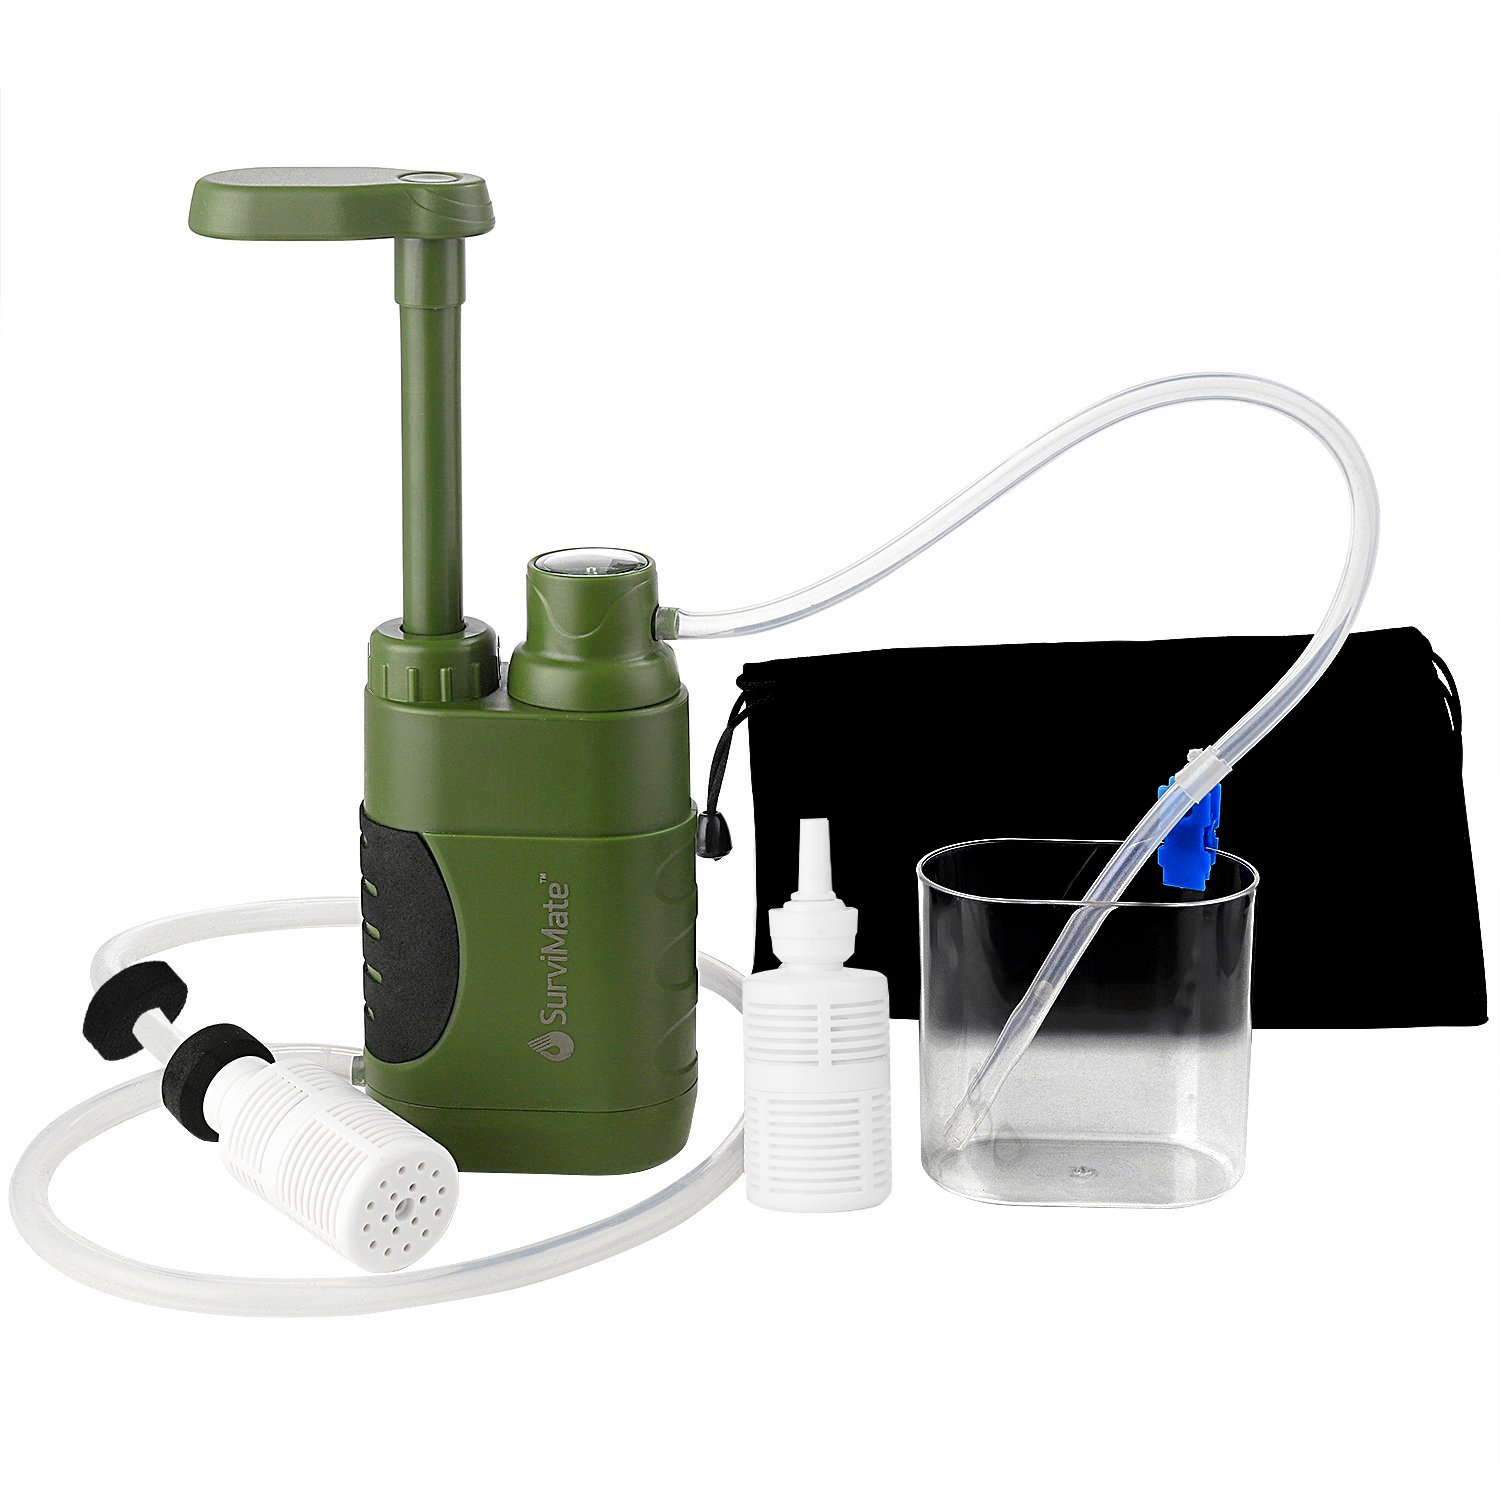 SurviMate Portable Water Filter Pump for Hiking Camping Travel Emergency use with Activated Carbon 3 Filter Stages,2 Replaceable Pre-Filter Green Pump